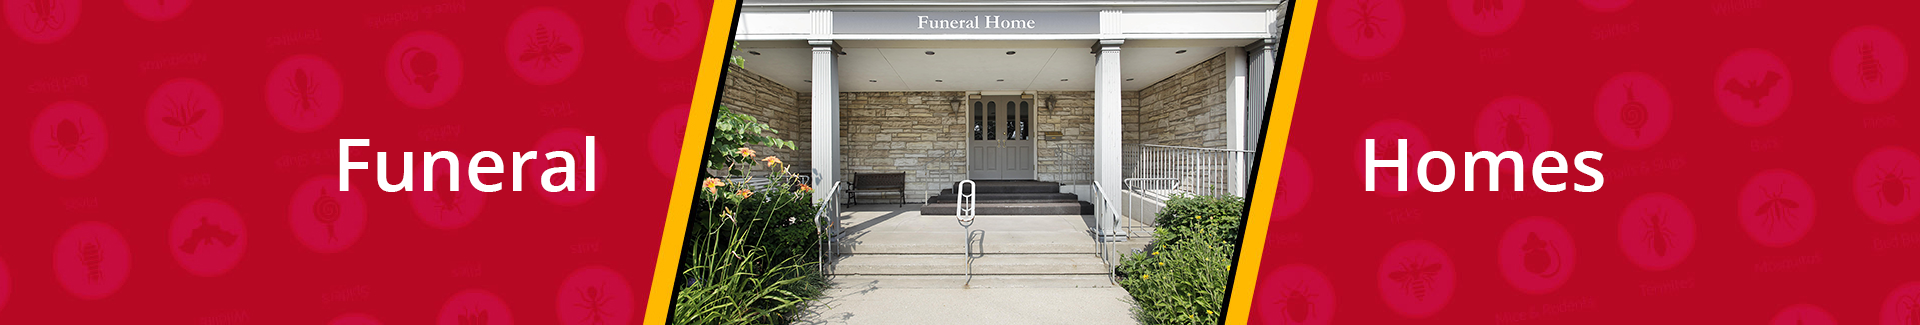 Fort lauderdale funeral home pest control services termite flea and tick prevention